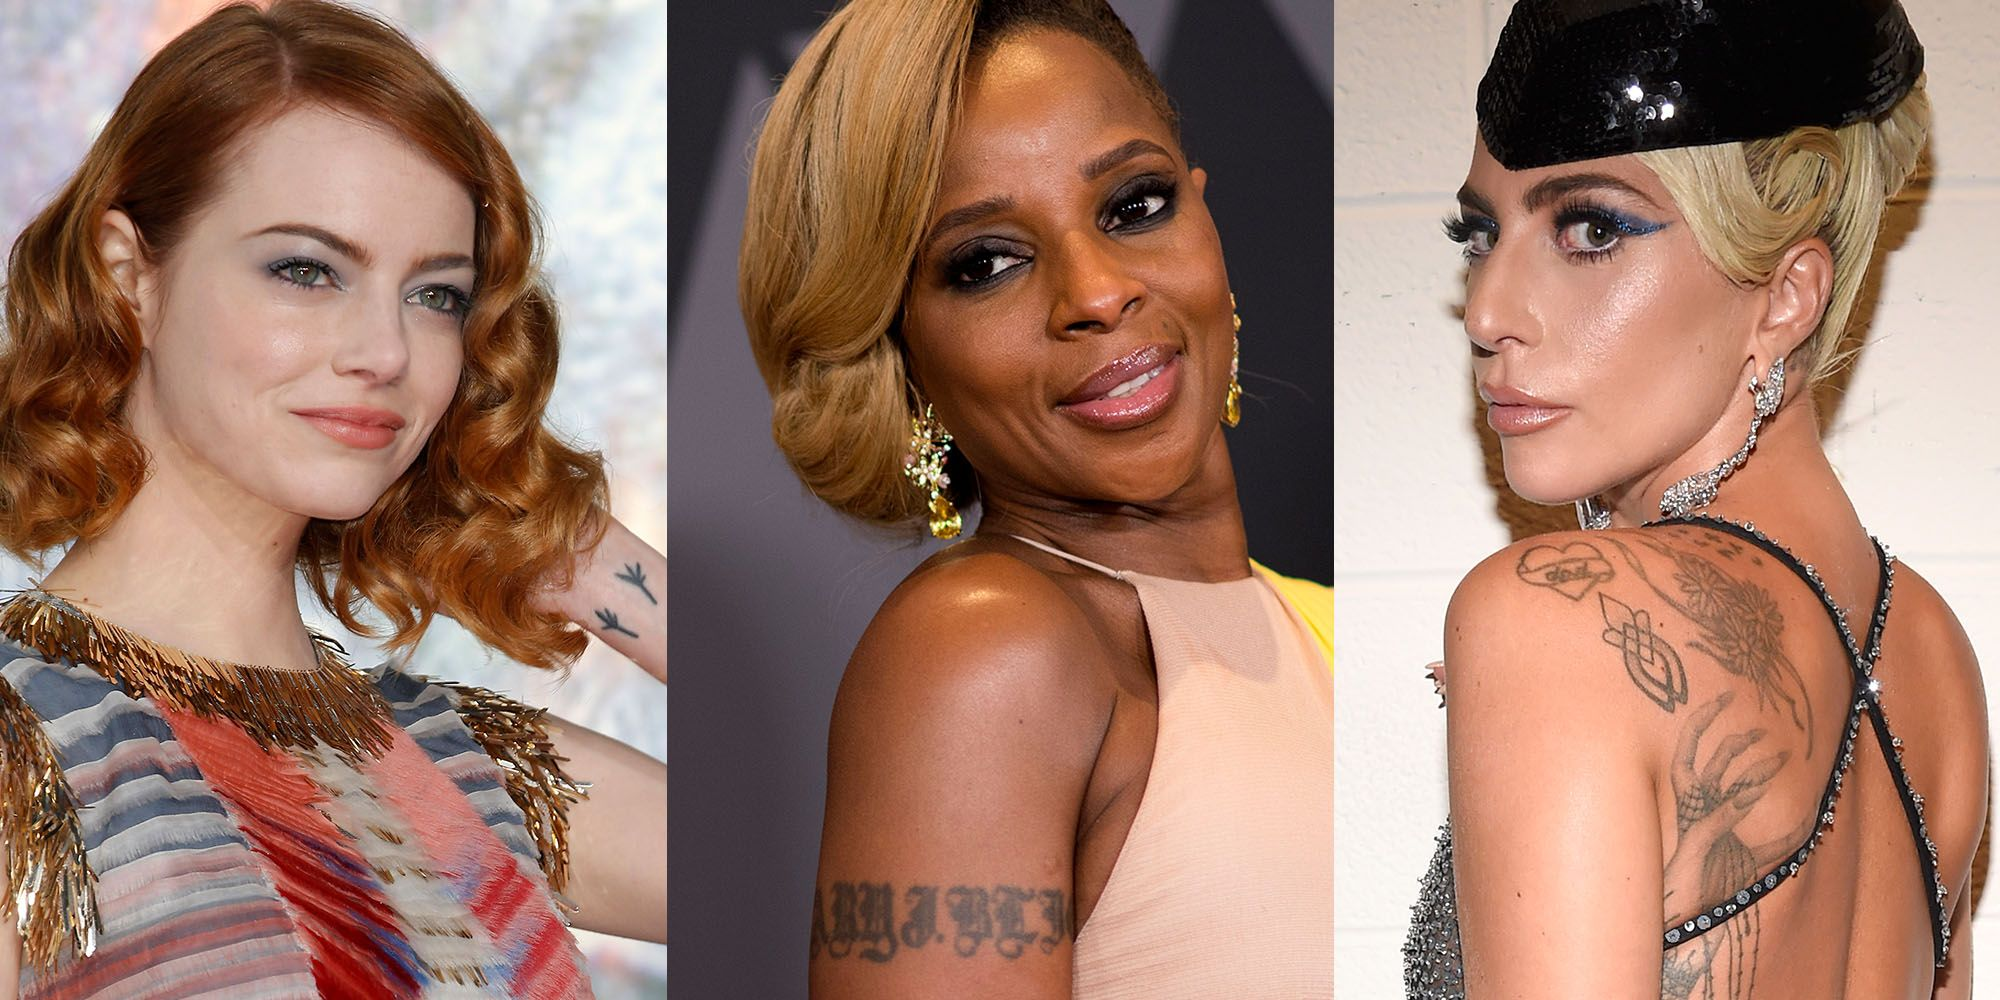 16 Celebrity Tattoos and the Meanings Behind Them